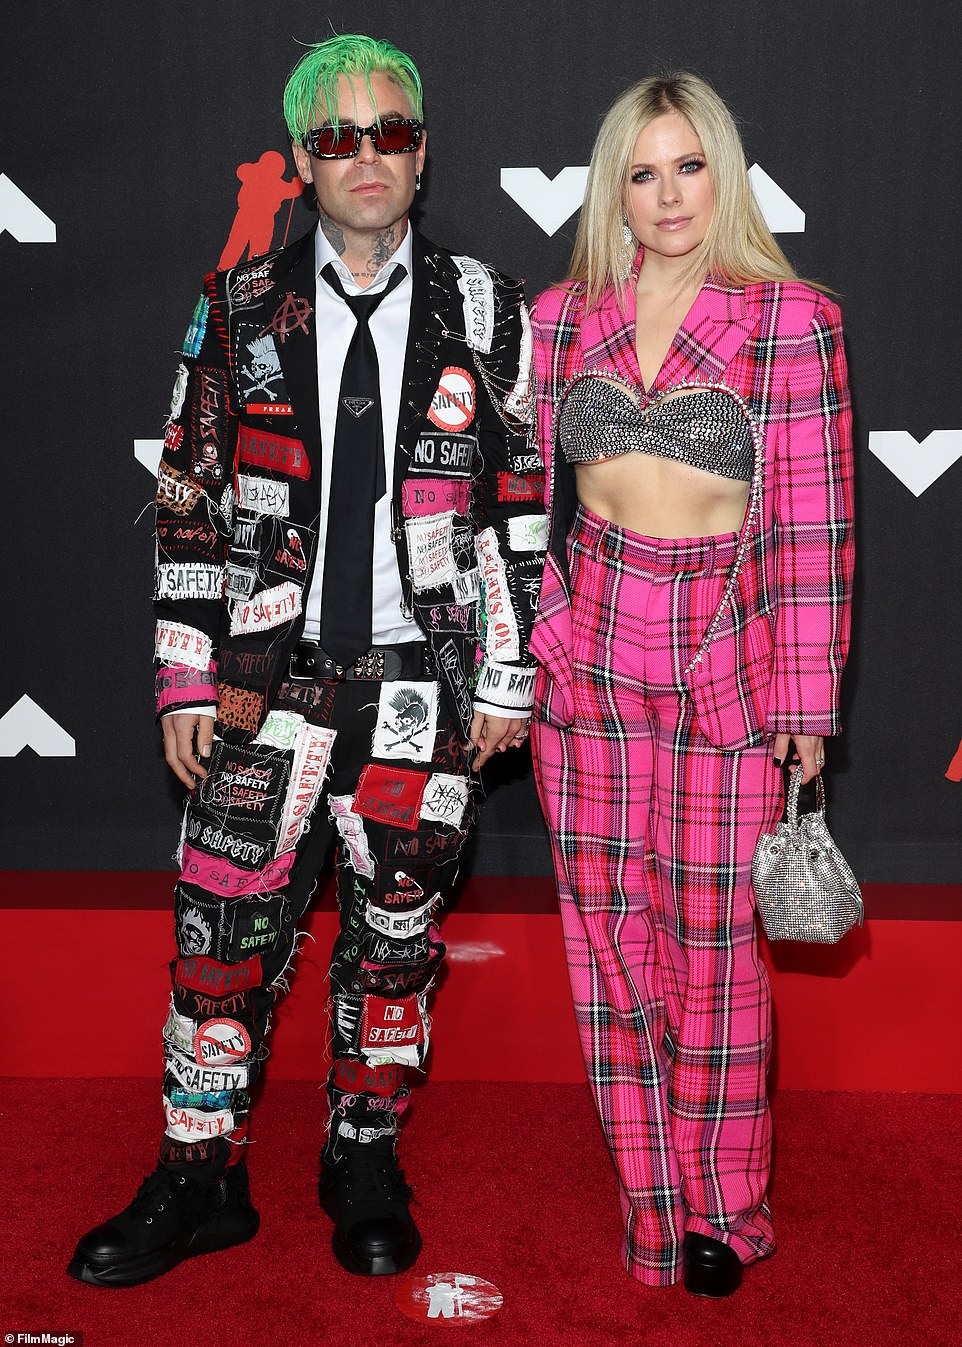 Pretty in pink:Avril Lavigne proved why she was a pop-punk princess wearing a pink plaid suit with a bedazzled bra while there with boyfriend Mod Sun